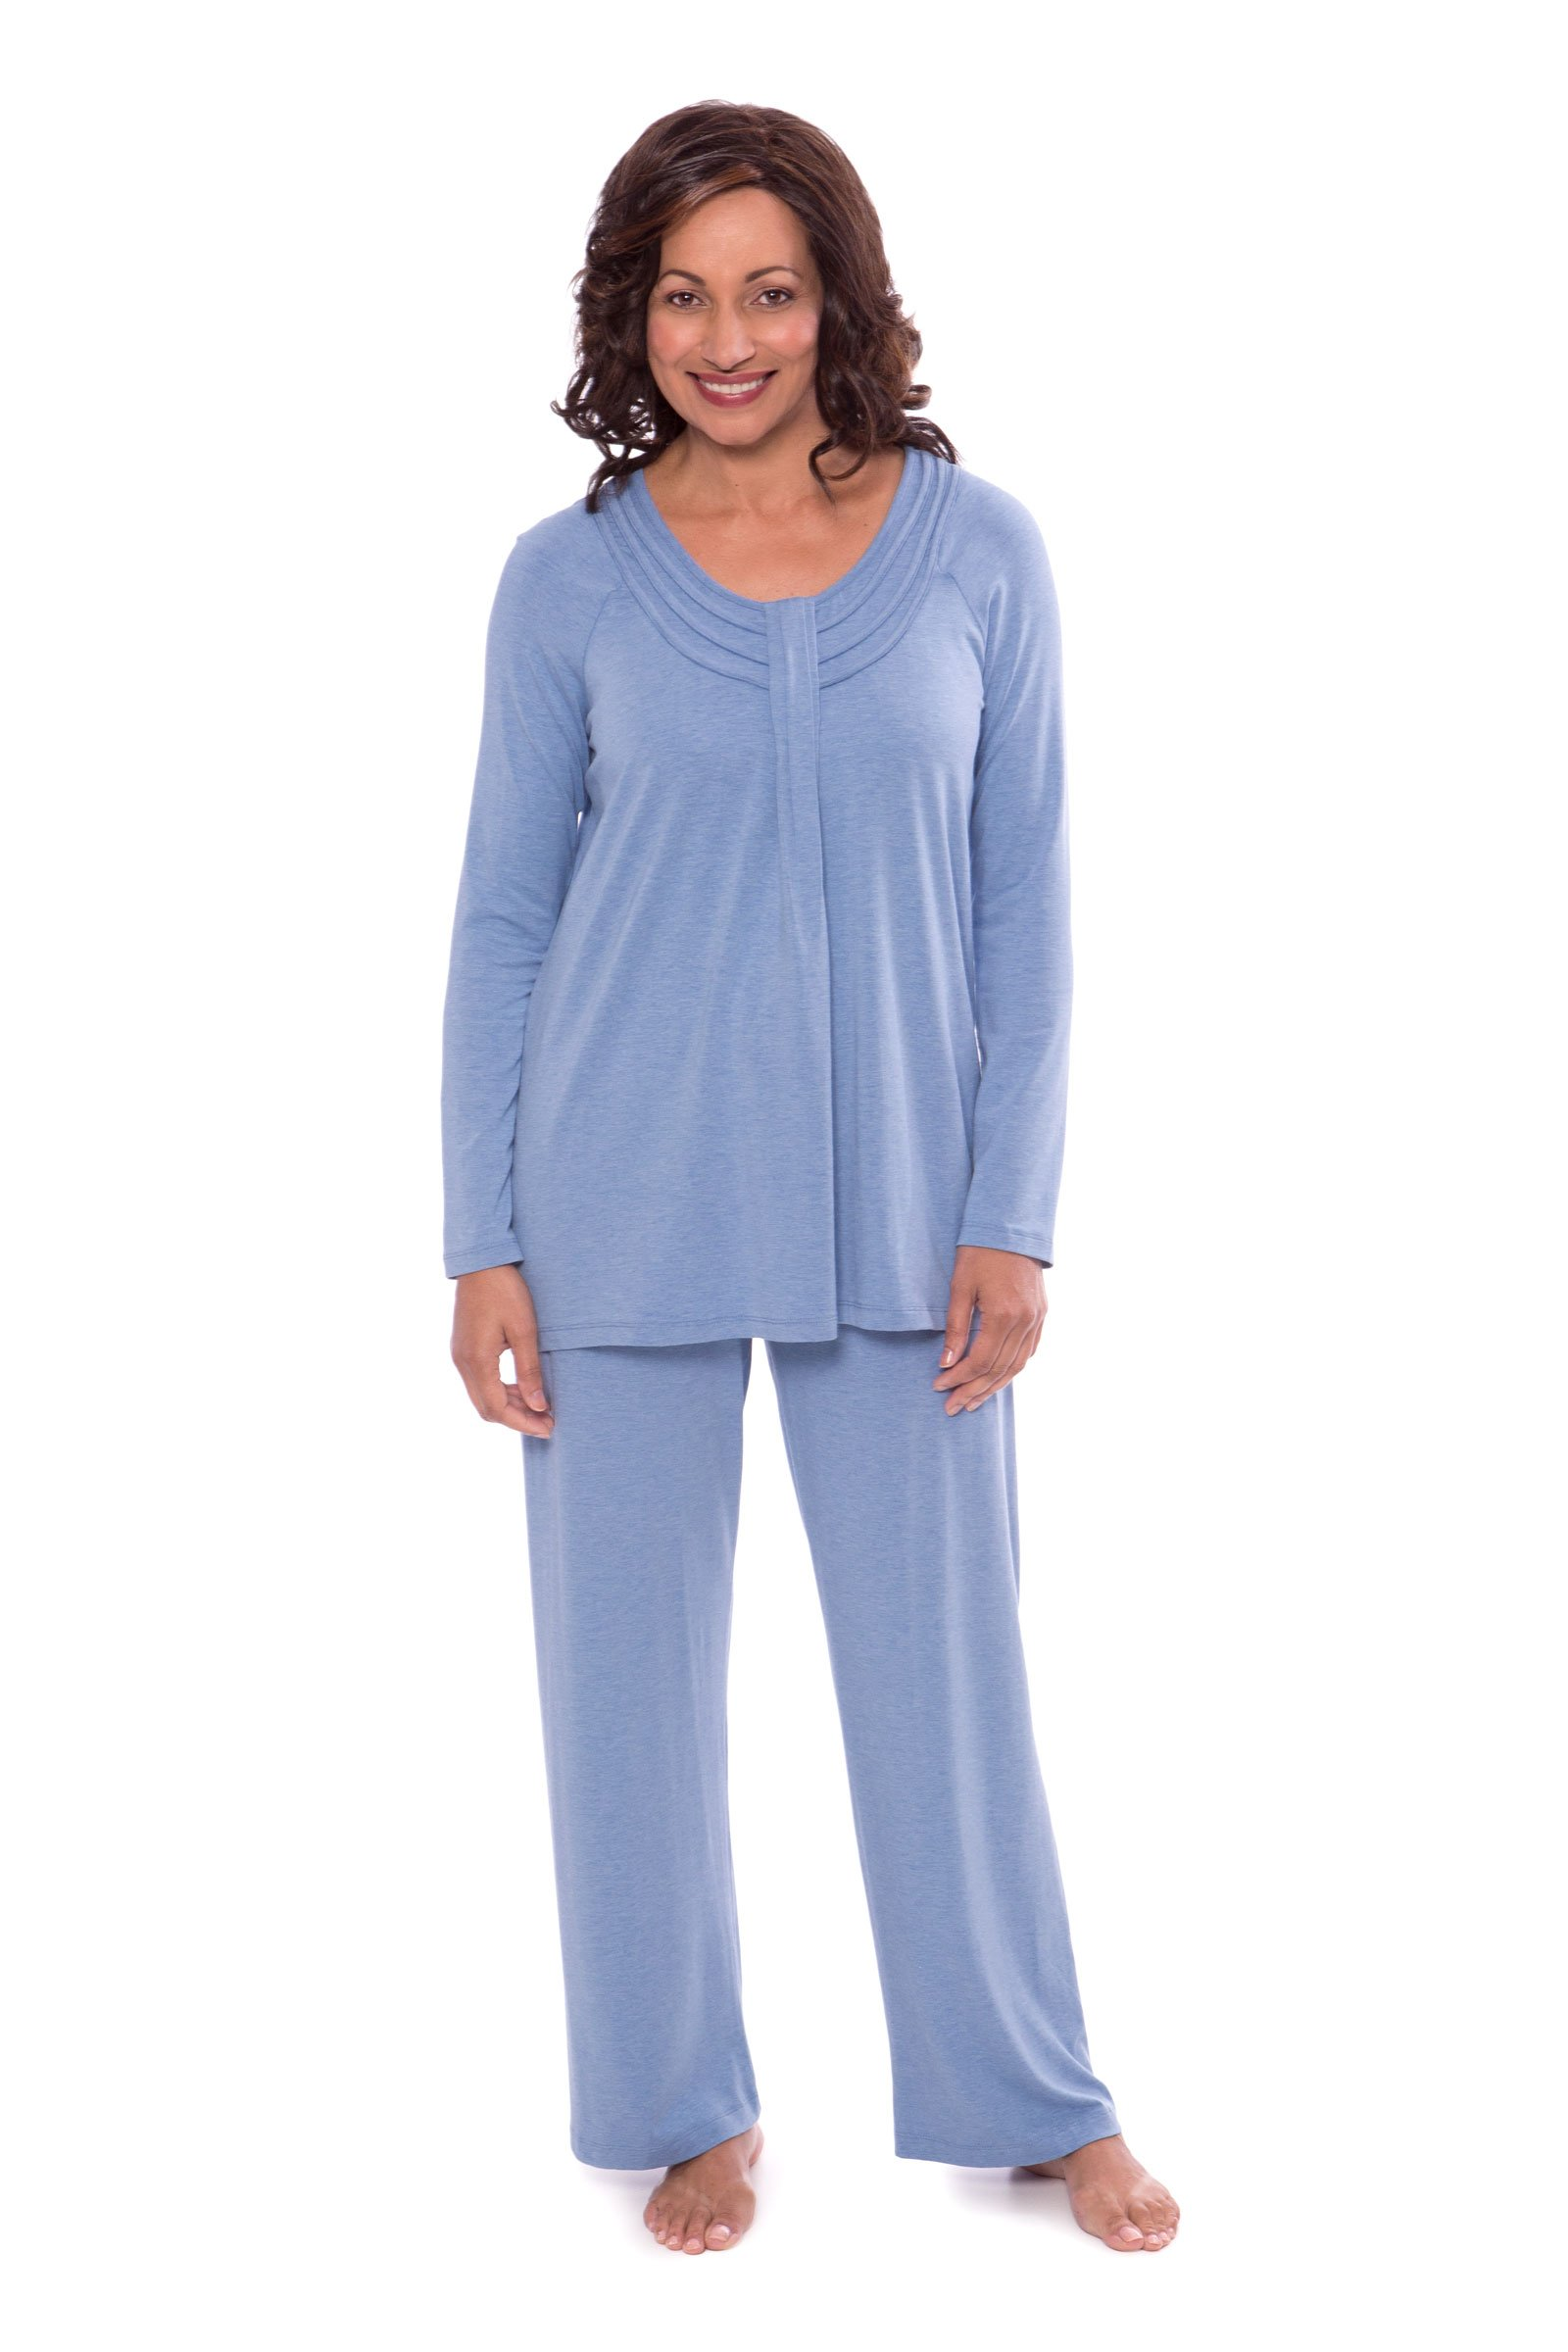 Texere Women's Long Sleeve Pajama Set (Heather Ice Blue, Small/Petite) Elegant Gifts for Her WB9996-2U2-SP